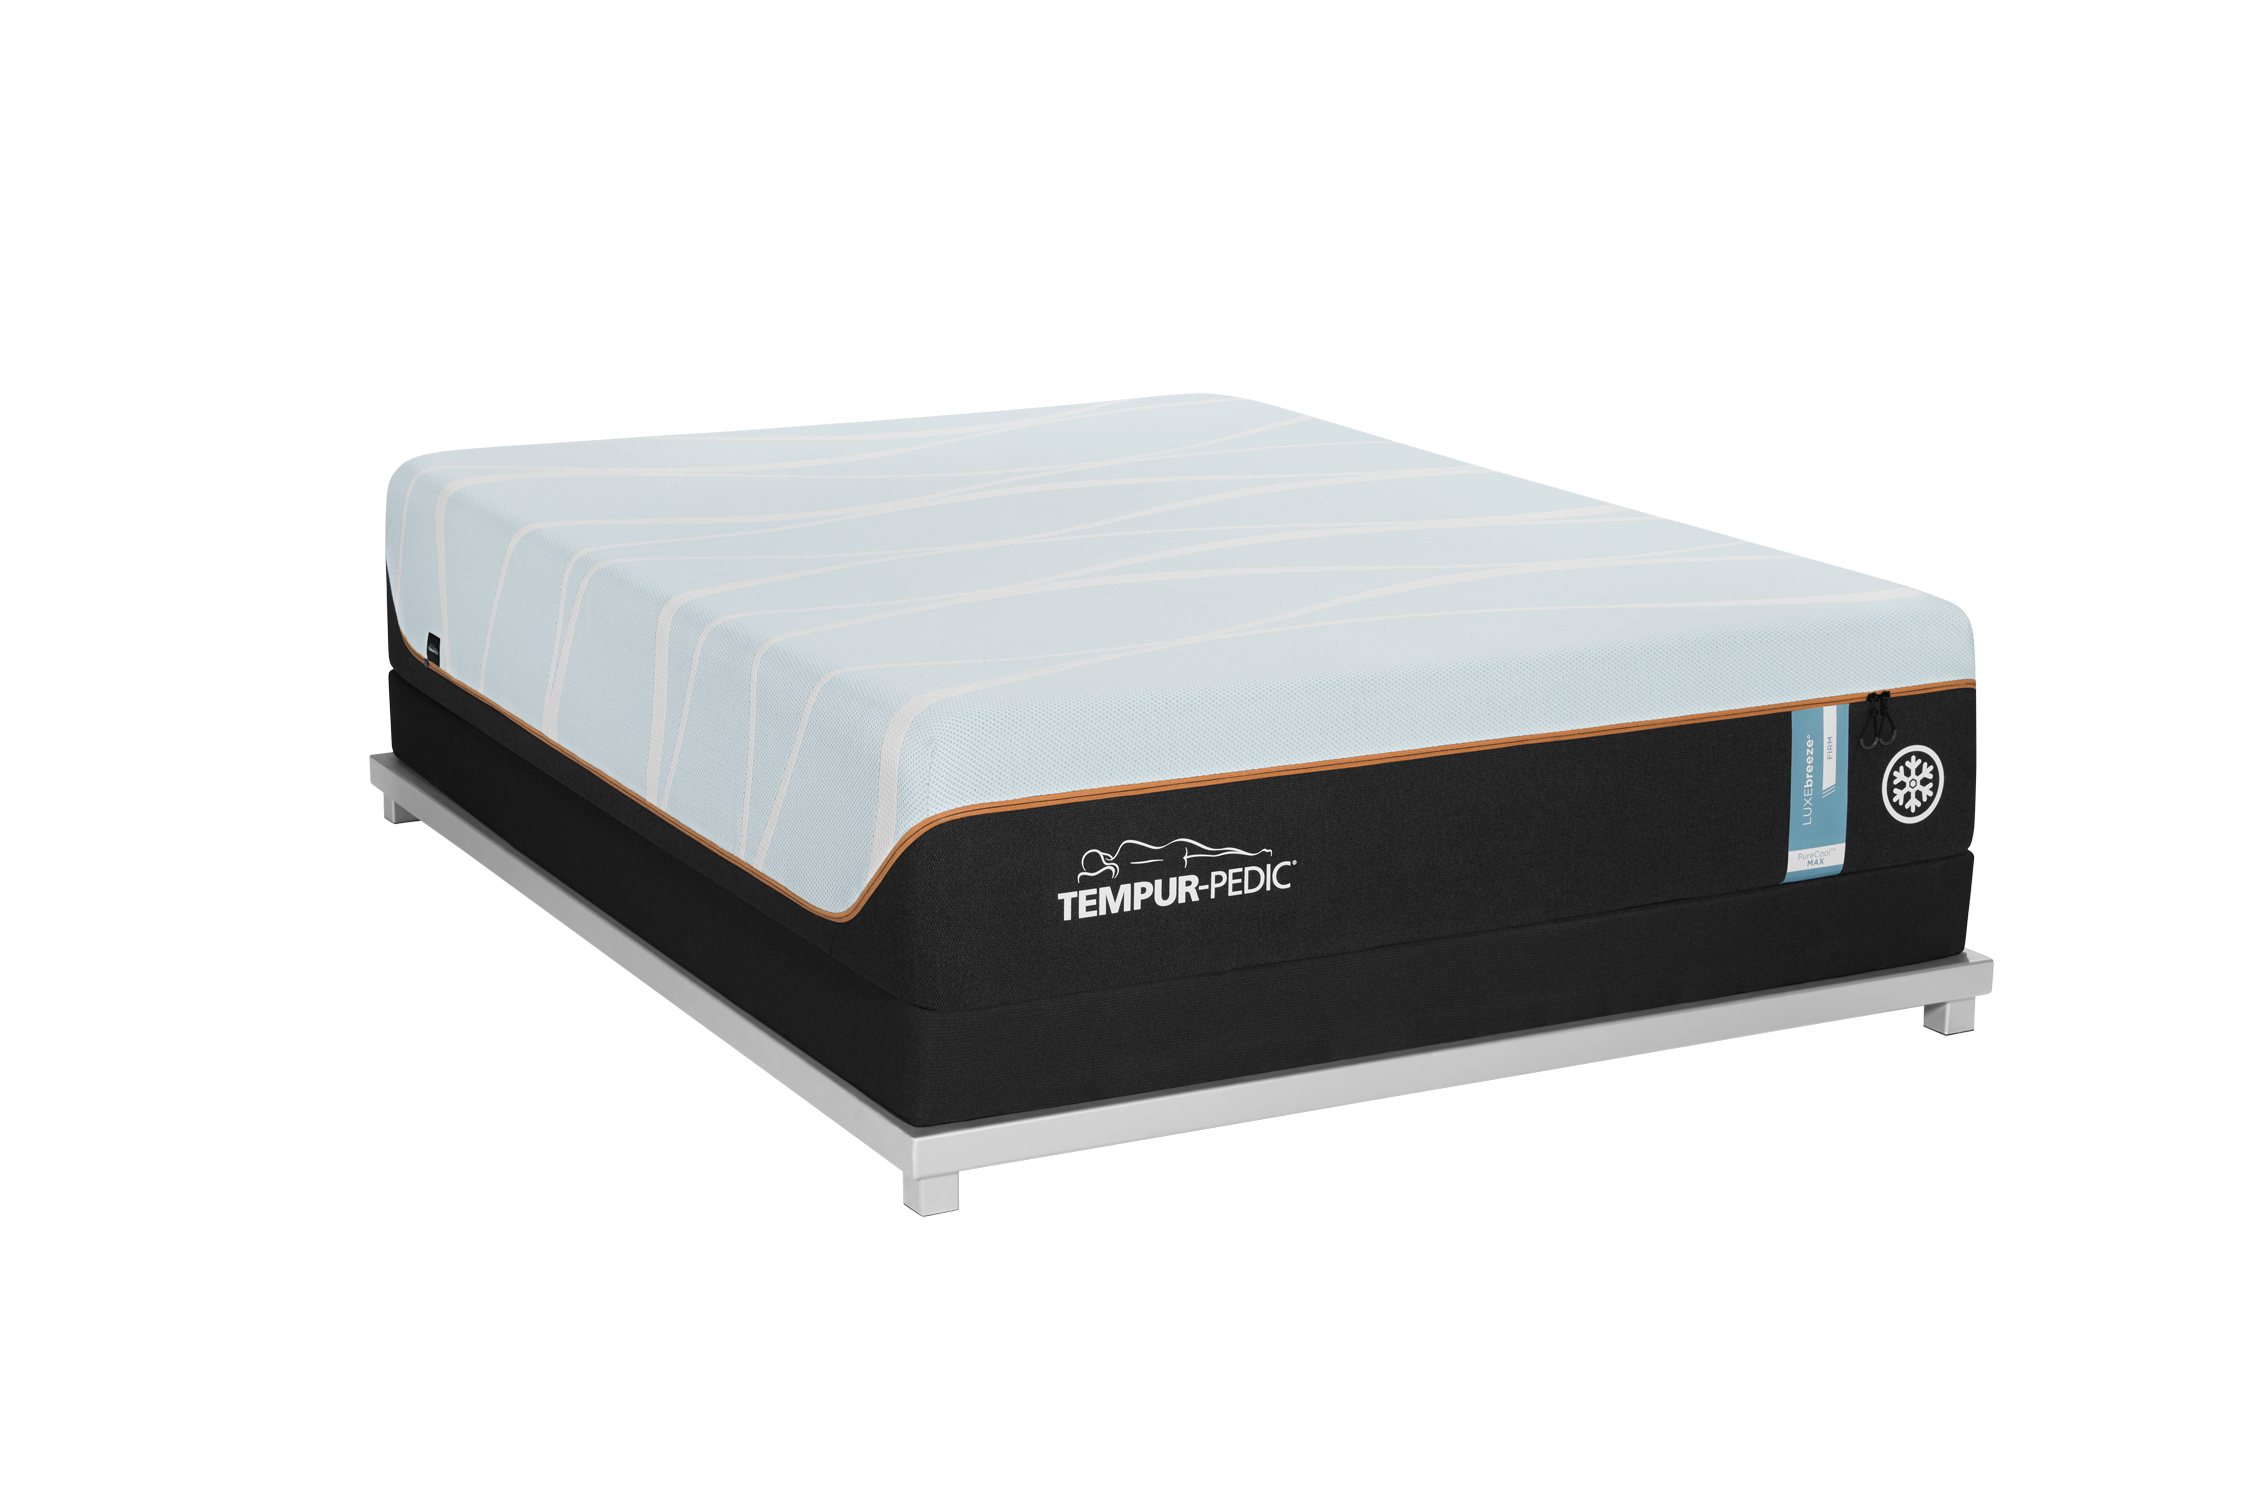 Tempure-Pedic LUXE Breeze Soft mattress